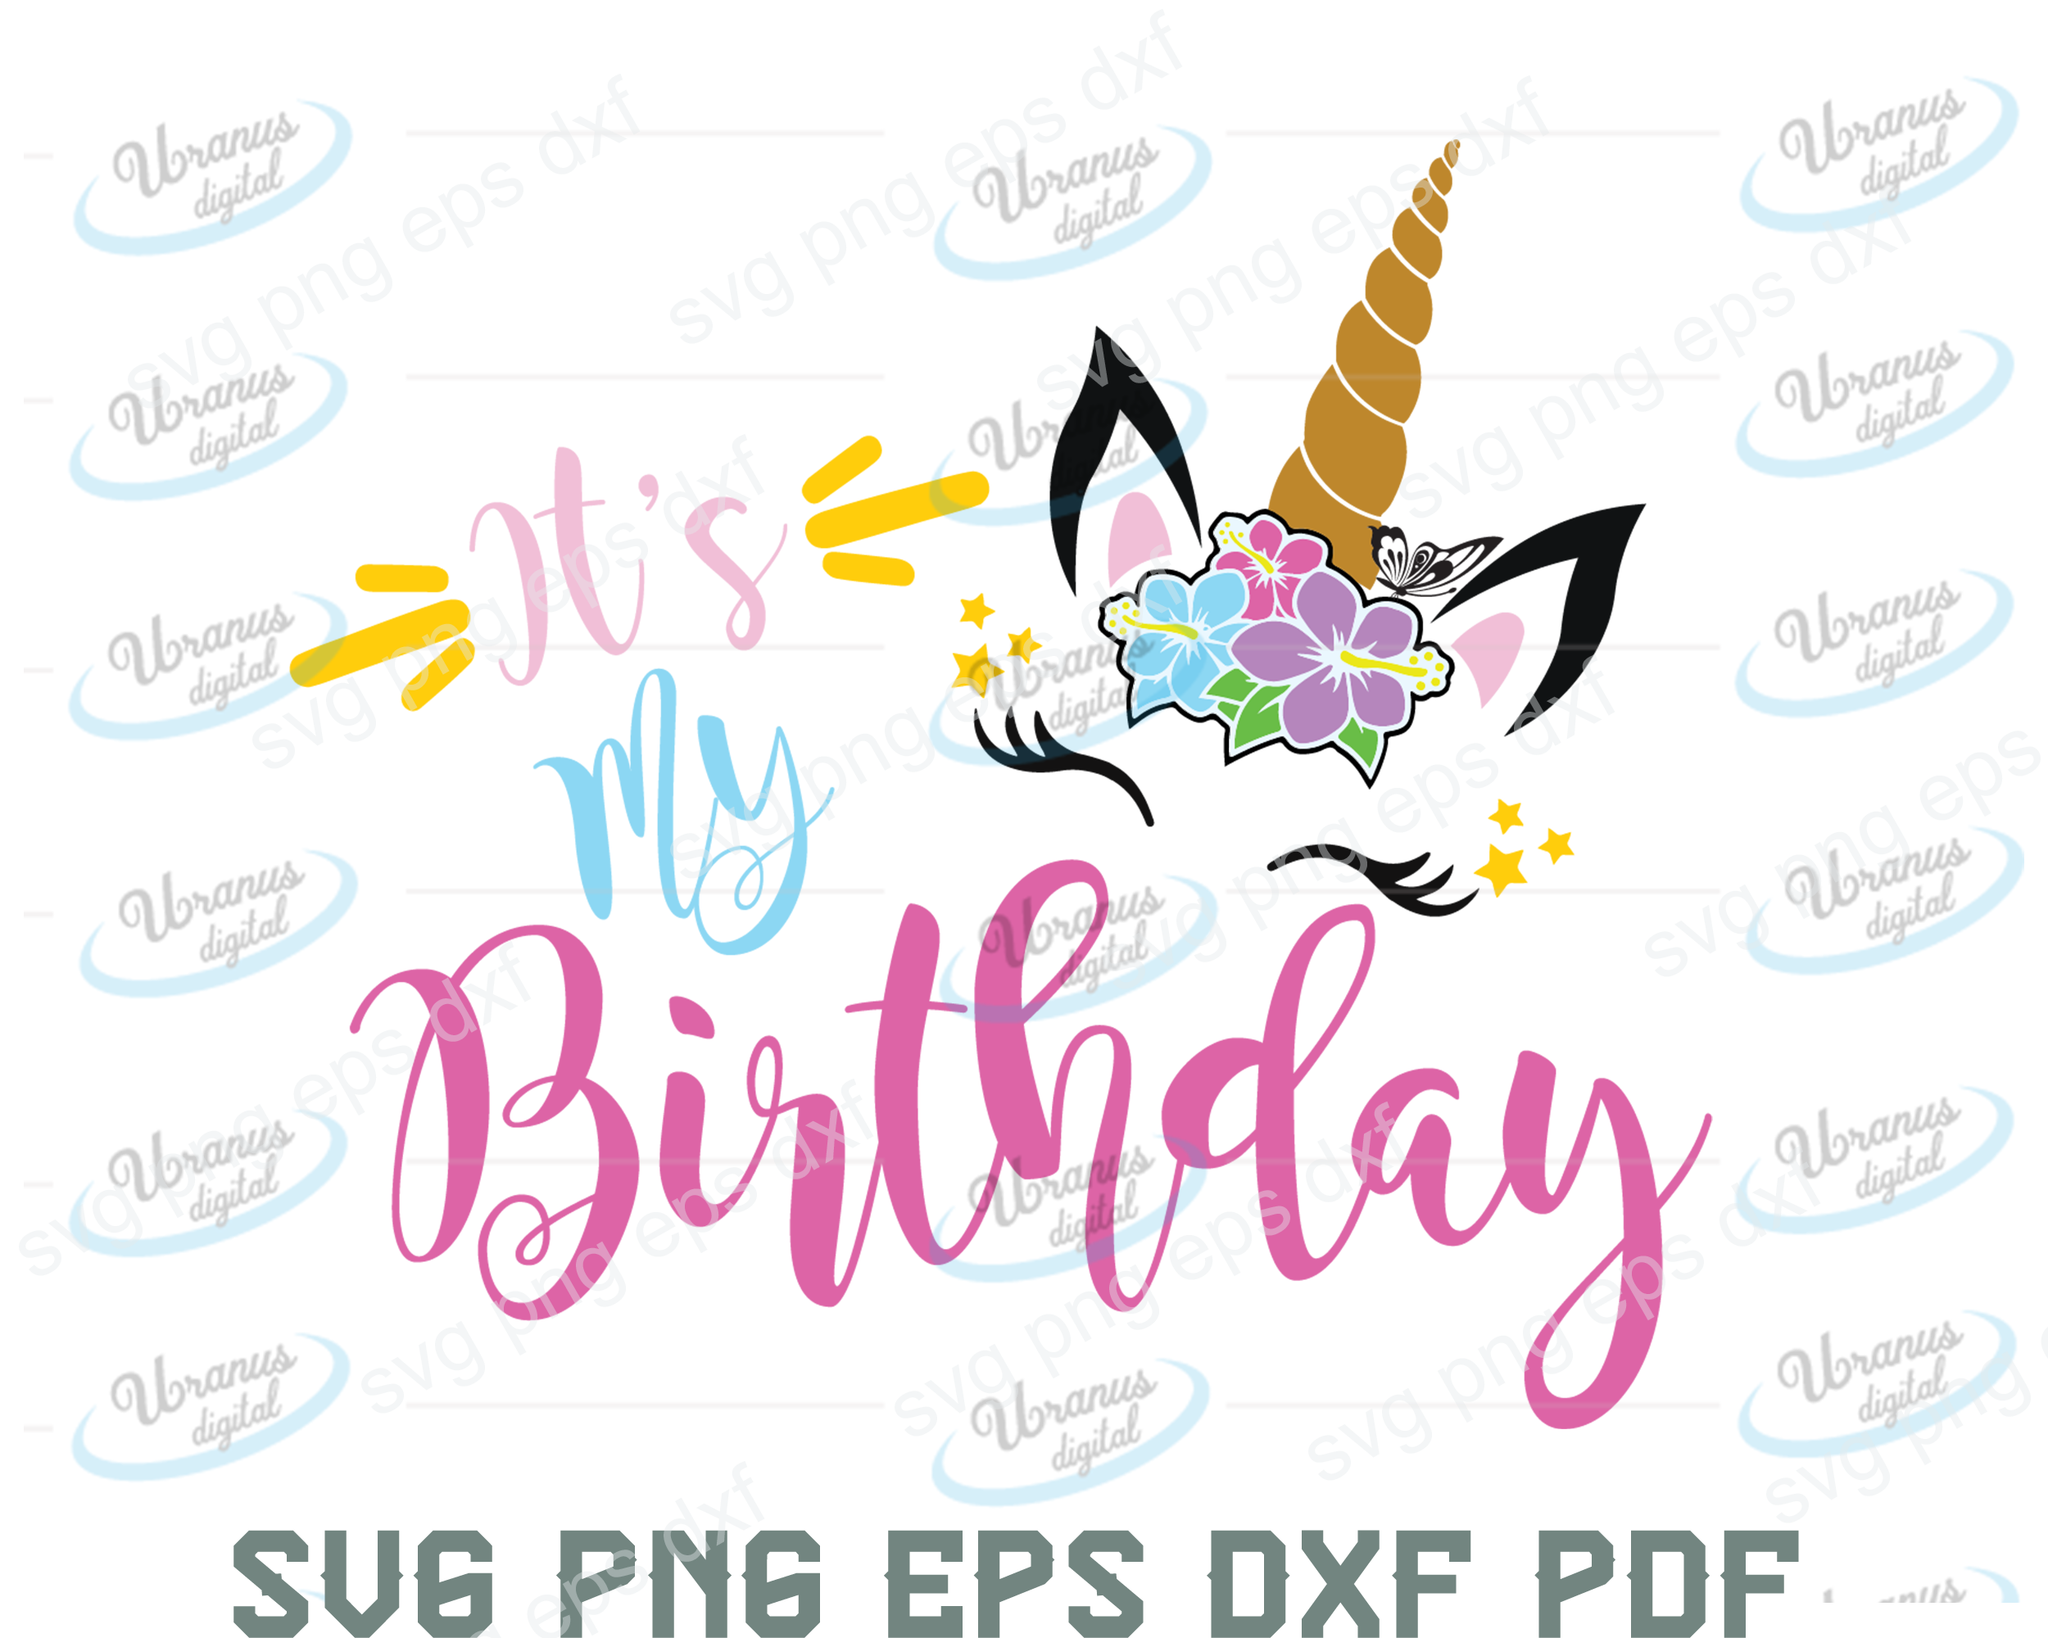 It's my birthday SVG,SVG Files For Silhouette, Files For Cricut, SVG, DXF, EPS, PNG Instant Download